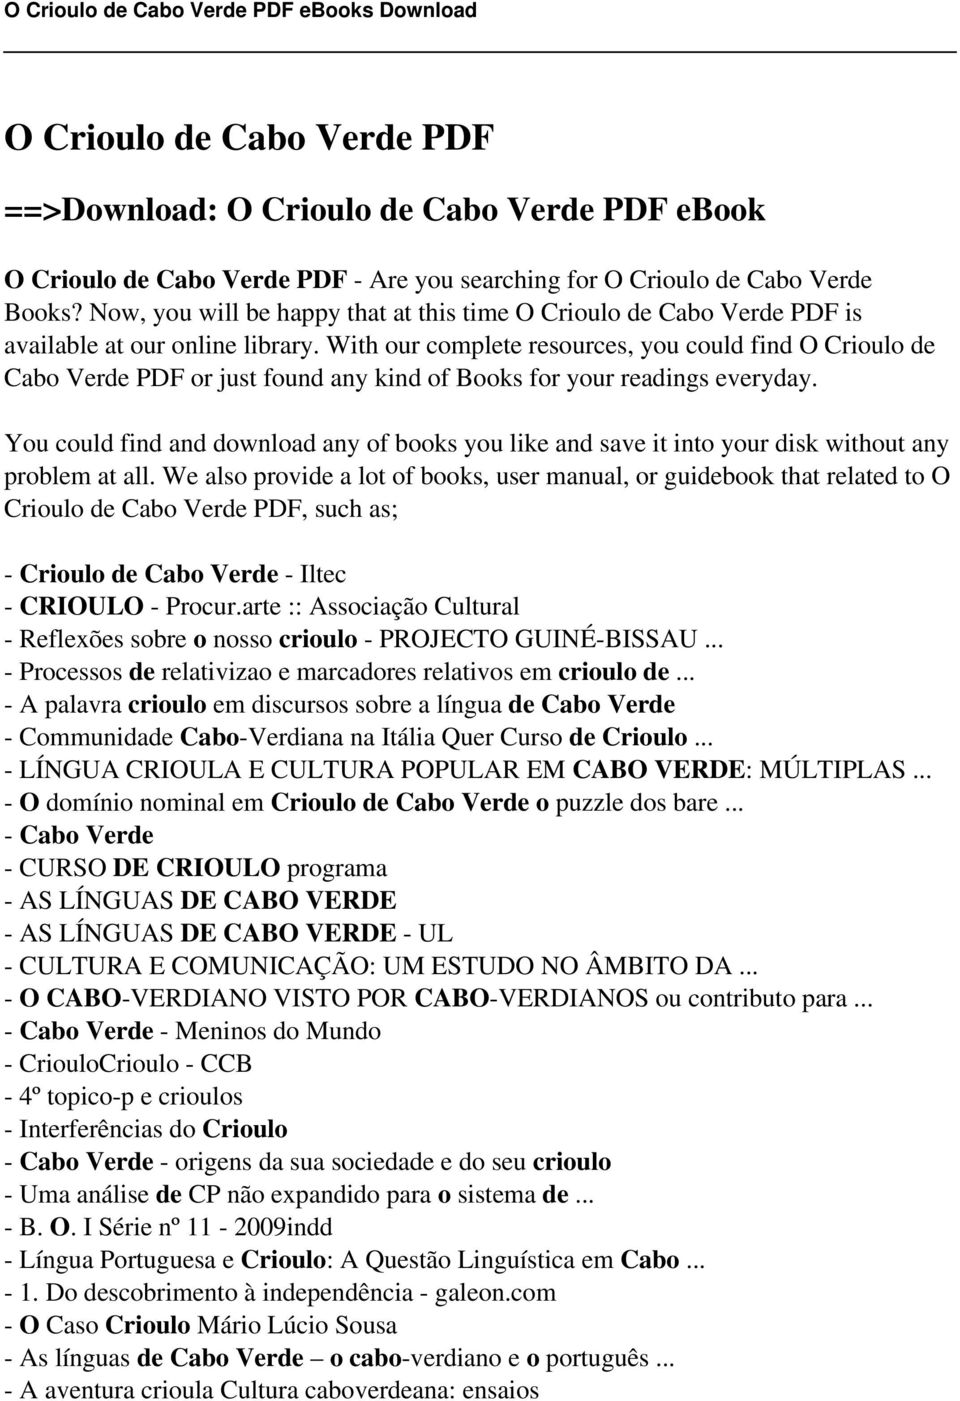 O crioulo de cabo verde pdf pdf with our complete resources you could find o crioulo de cabo verde pdf or just fandeluxe Images